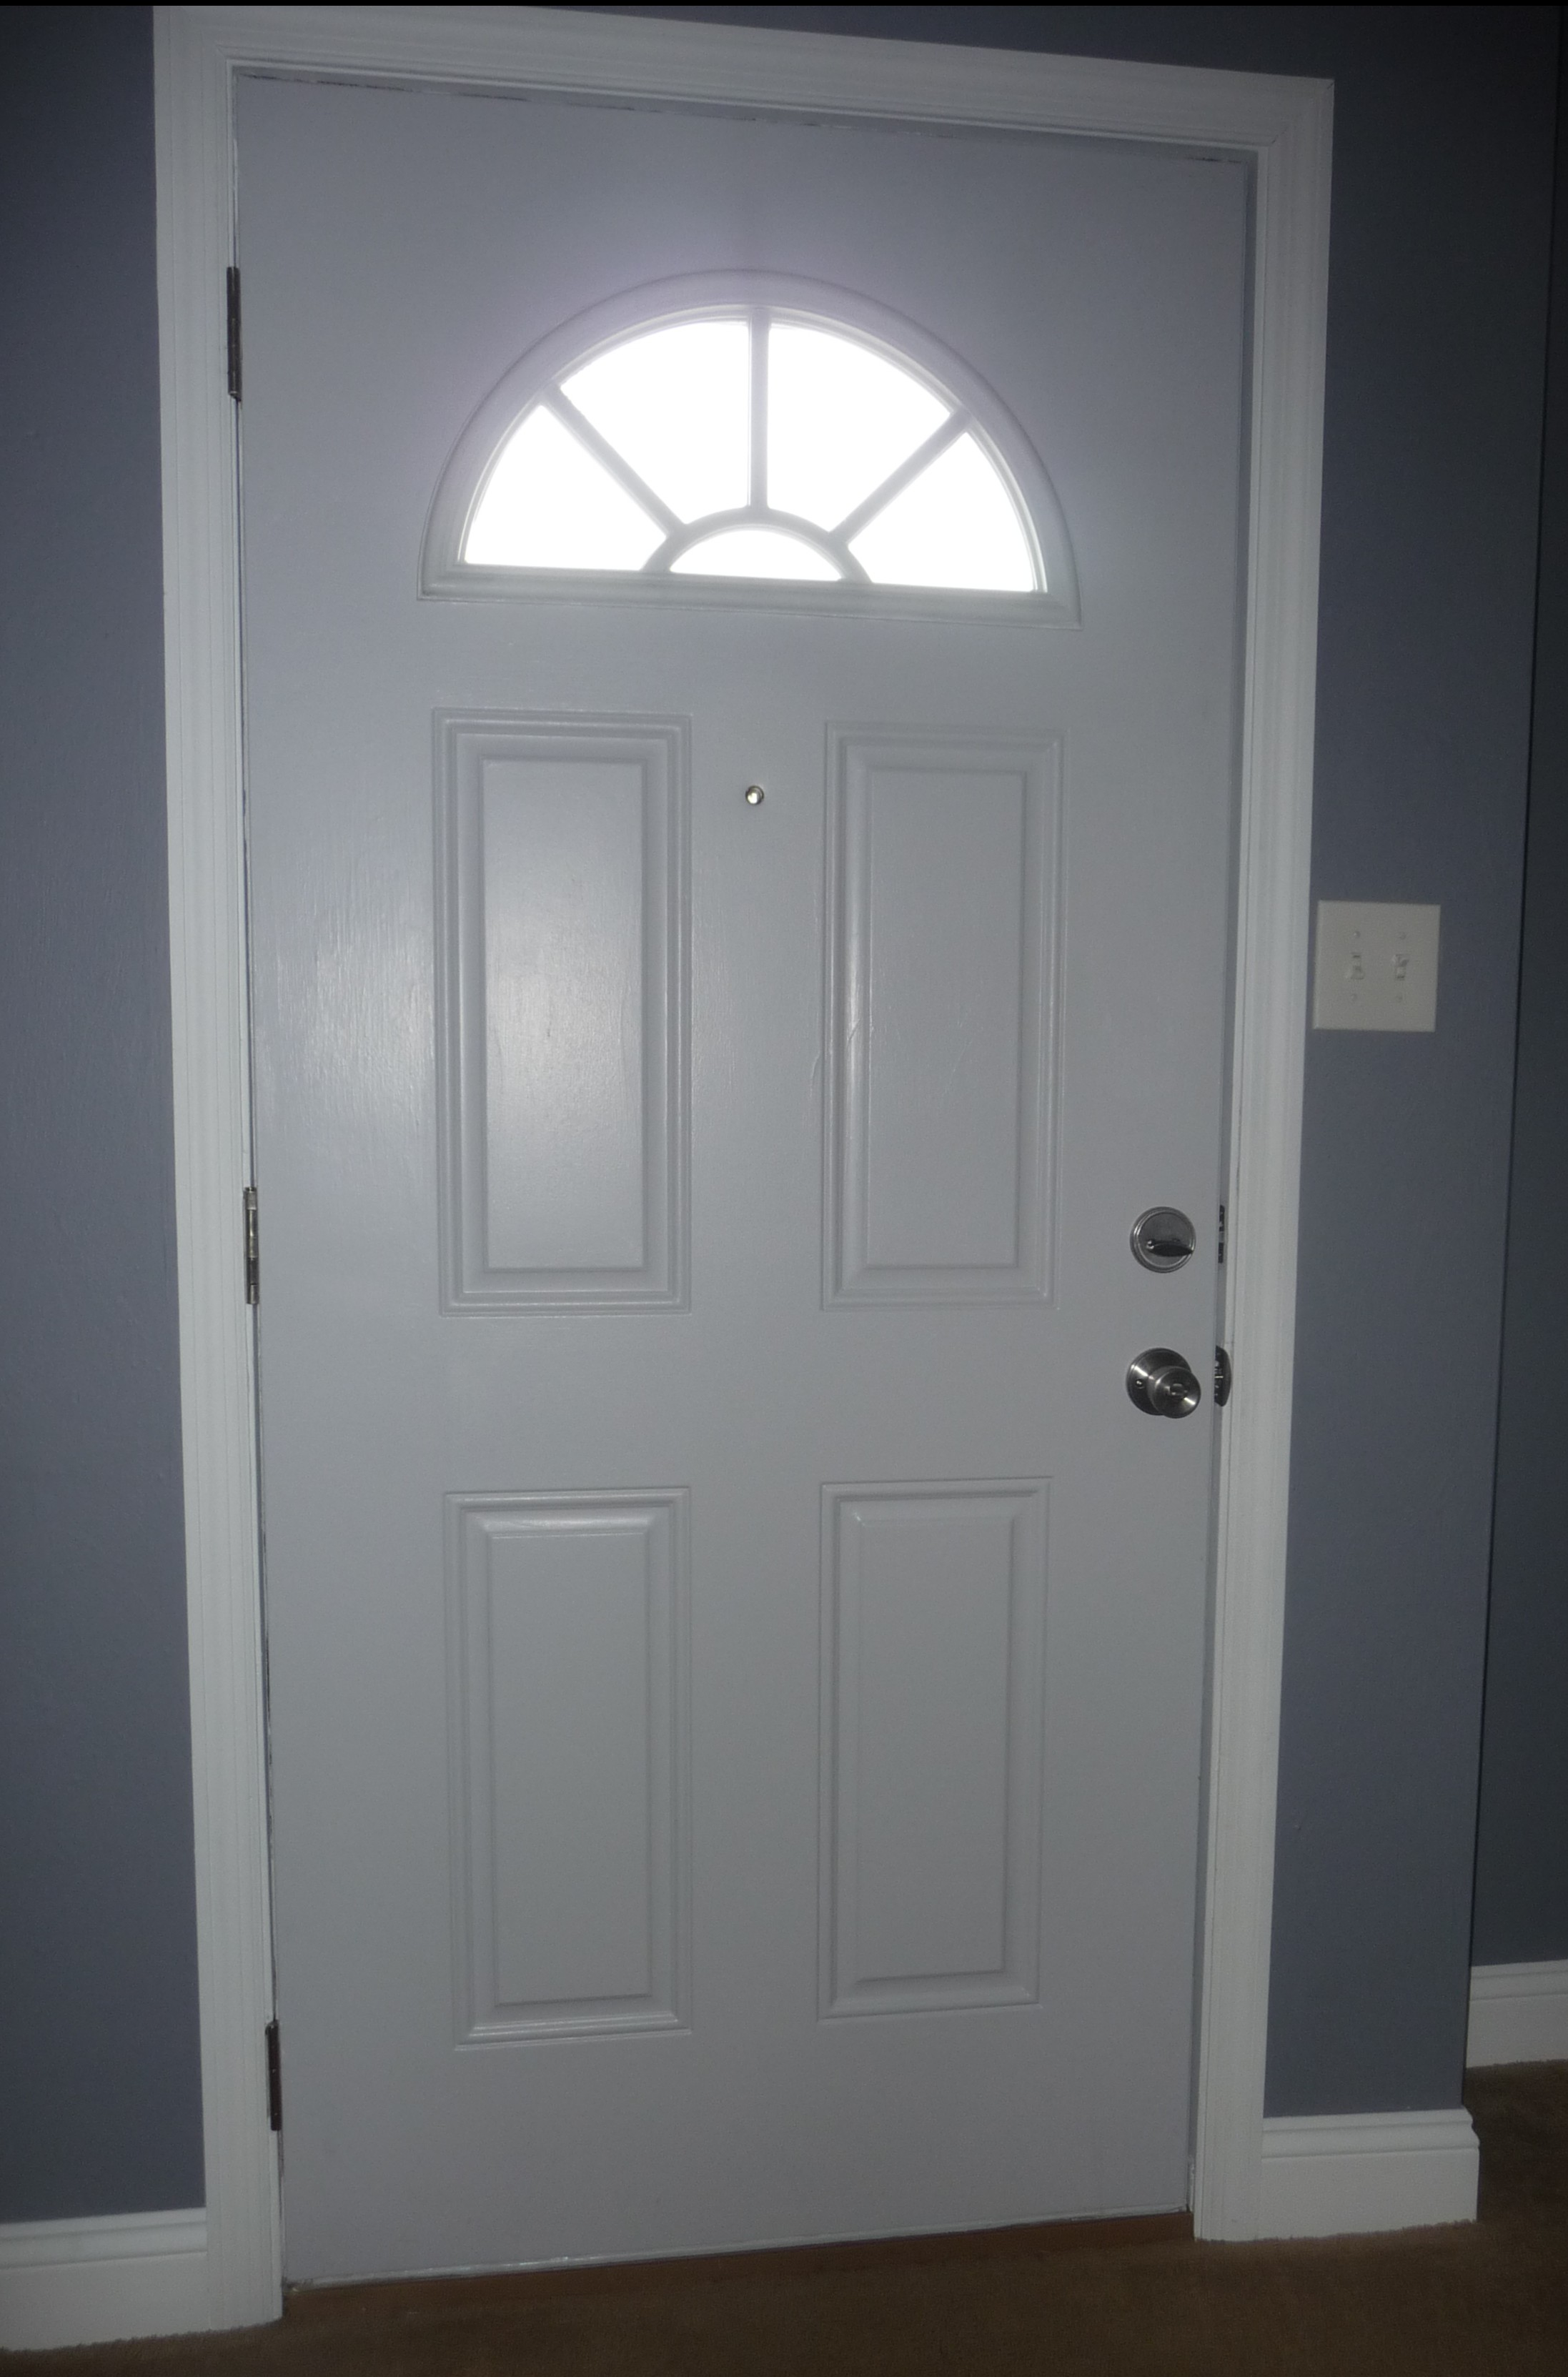 Peep Holes For Front Doors  Bing Images. 4 Door Luxury Cars. Restroom Doors. 96 Inch Bifold Closet Doors. Arched Door. King Garage Door. Underground Garage Storm Shelters. G-floor Garage Floor. Quonset Hut Garage